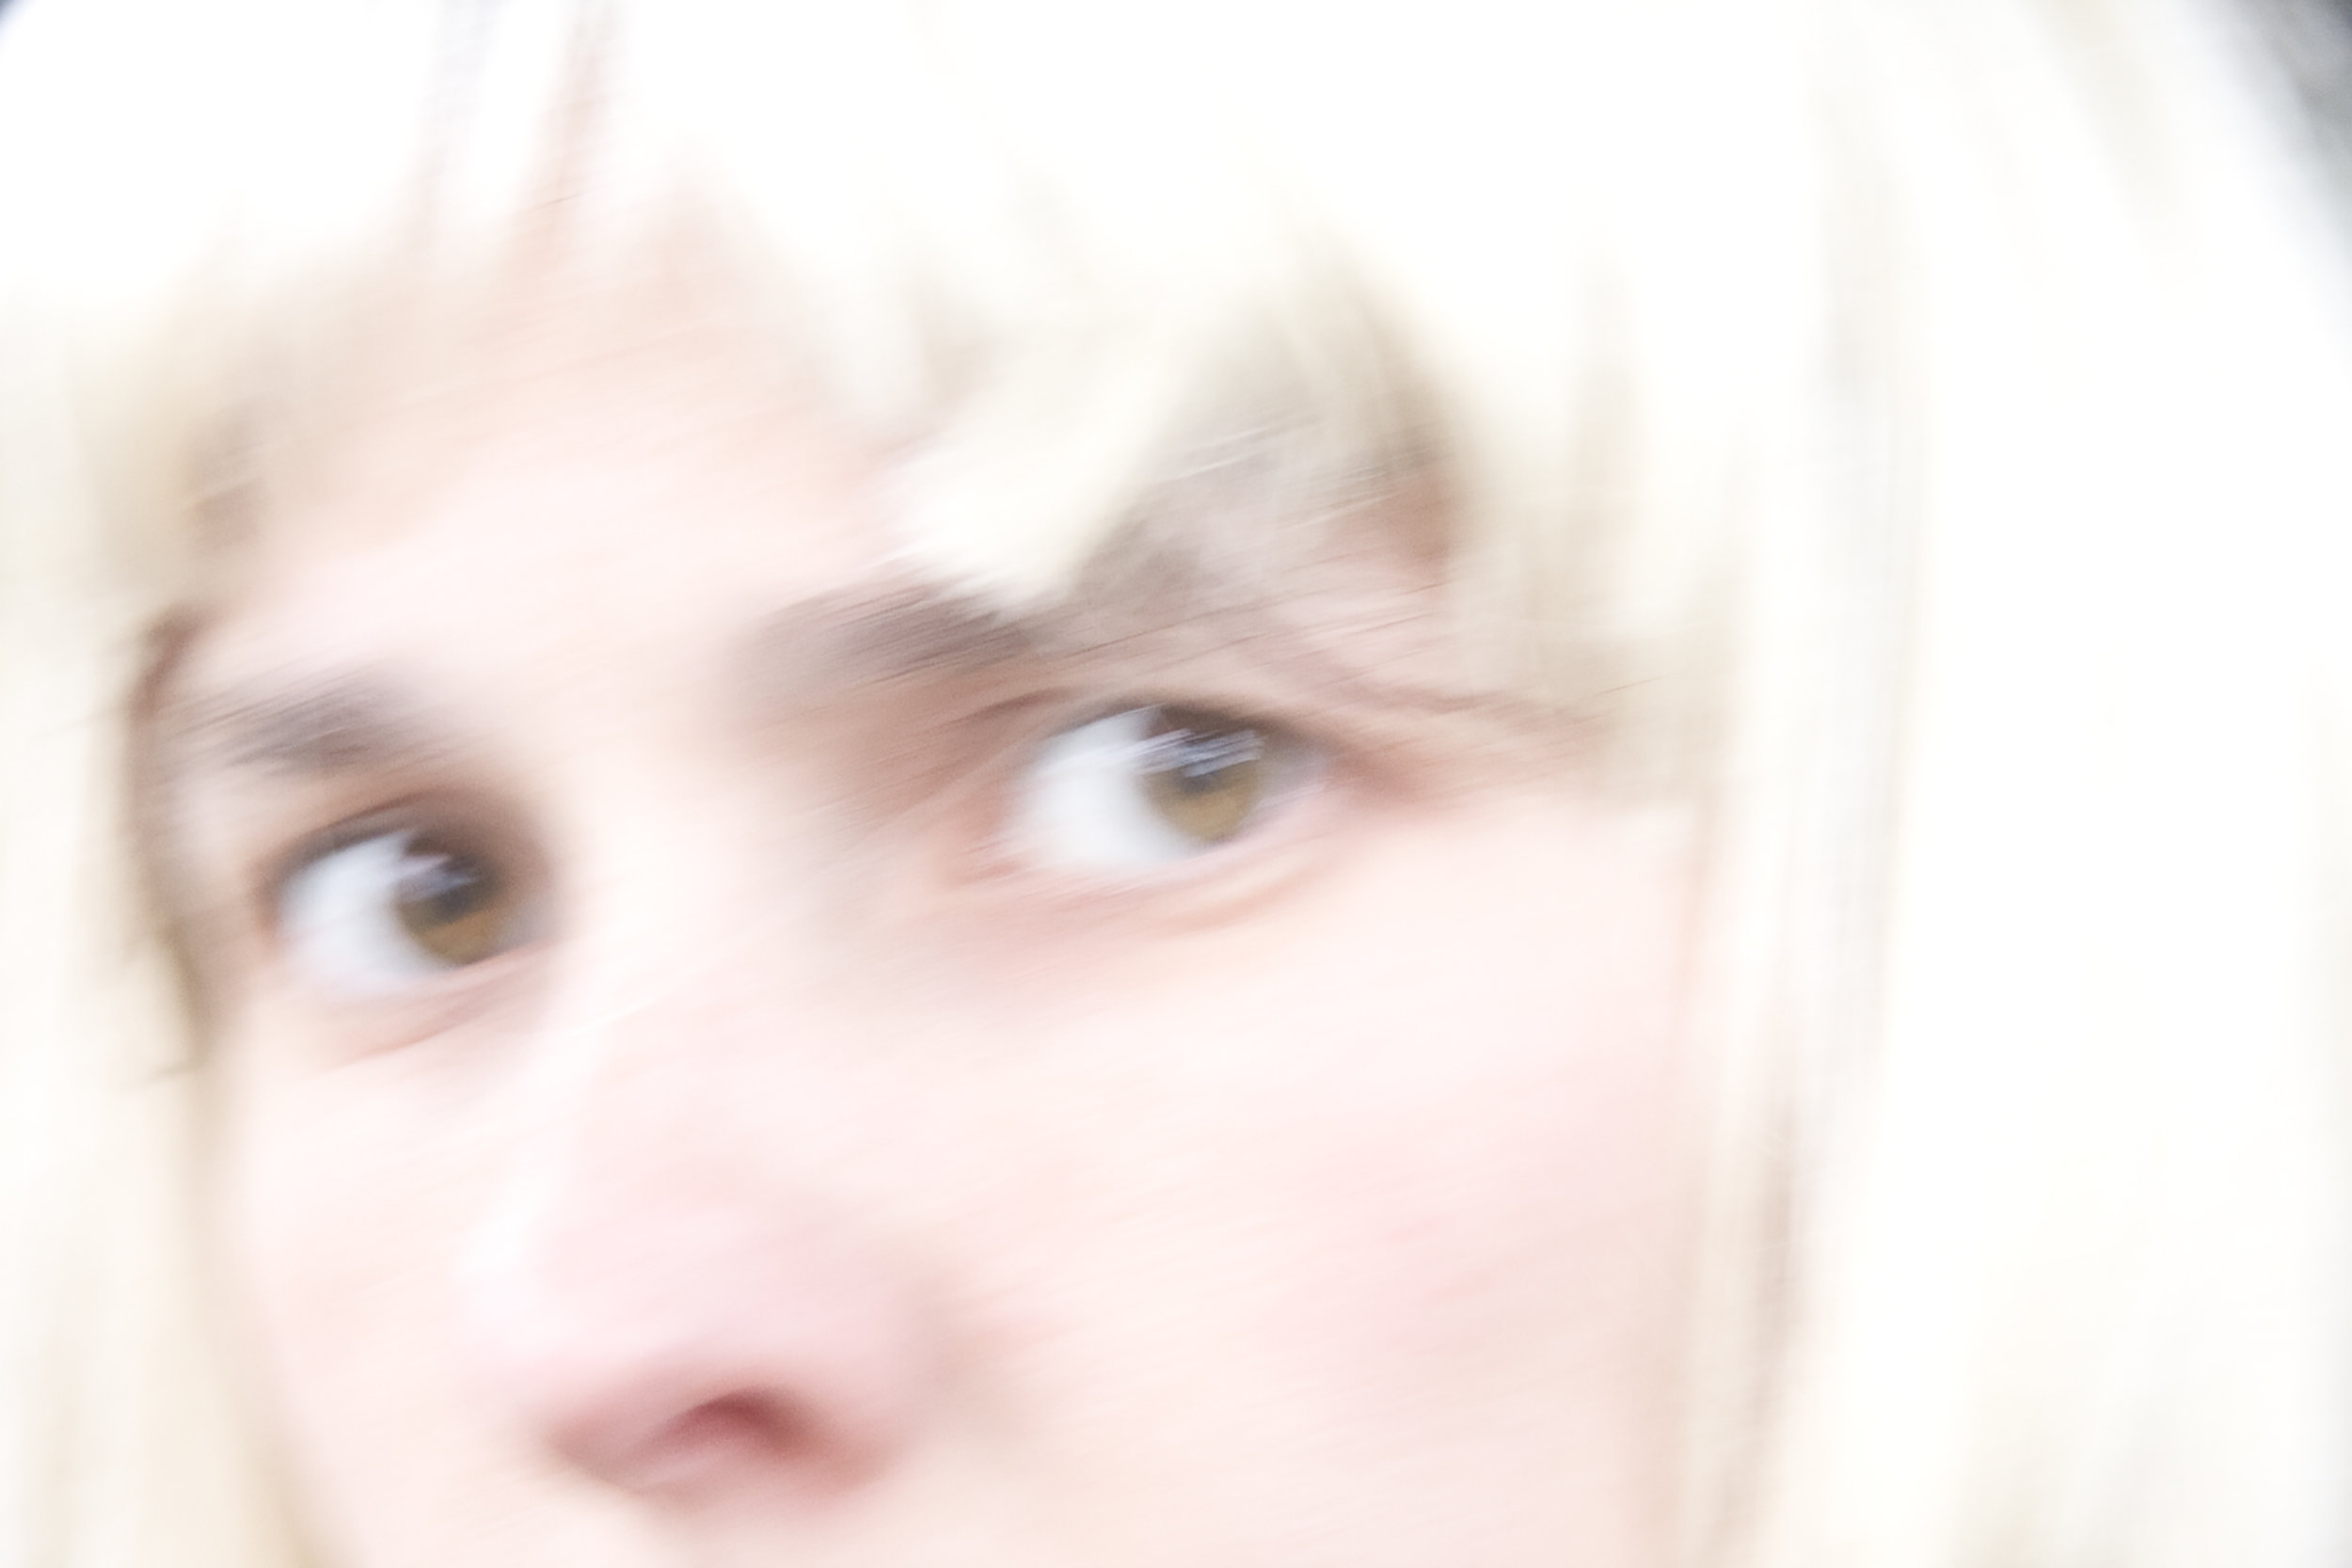 Self Portrait (with   blonde   wig) , 2009archival inkjet print, from  No Trespassing  (2007-2012), 11x15.75 inches